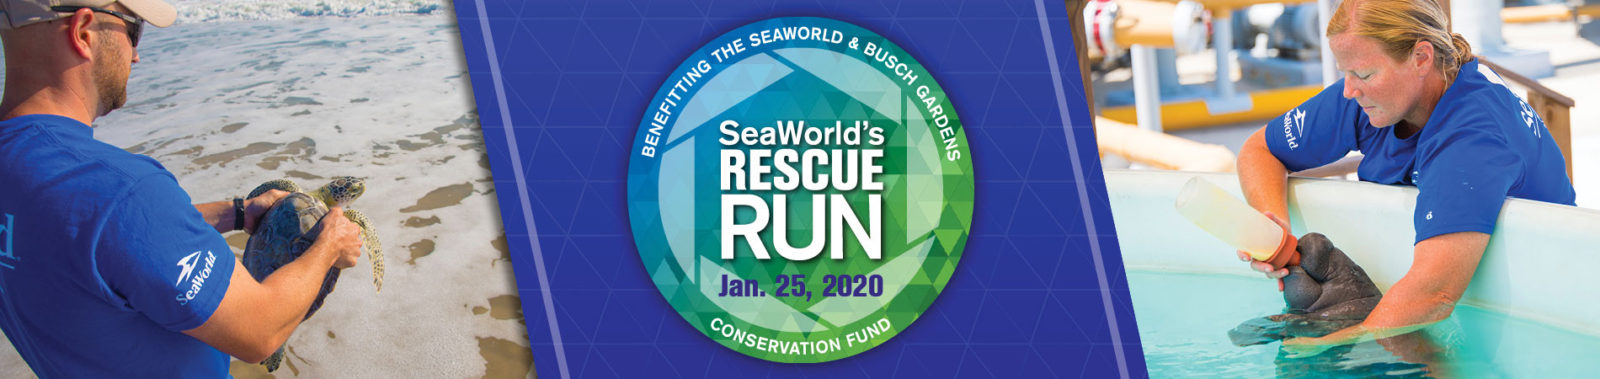 SeaWorld Orlando Rescue Run January 2020